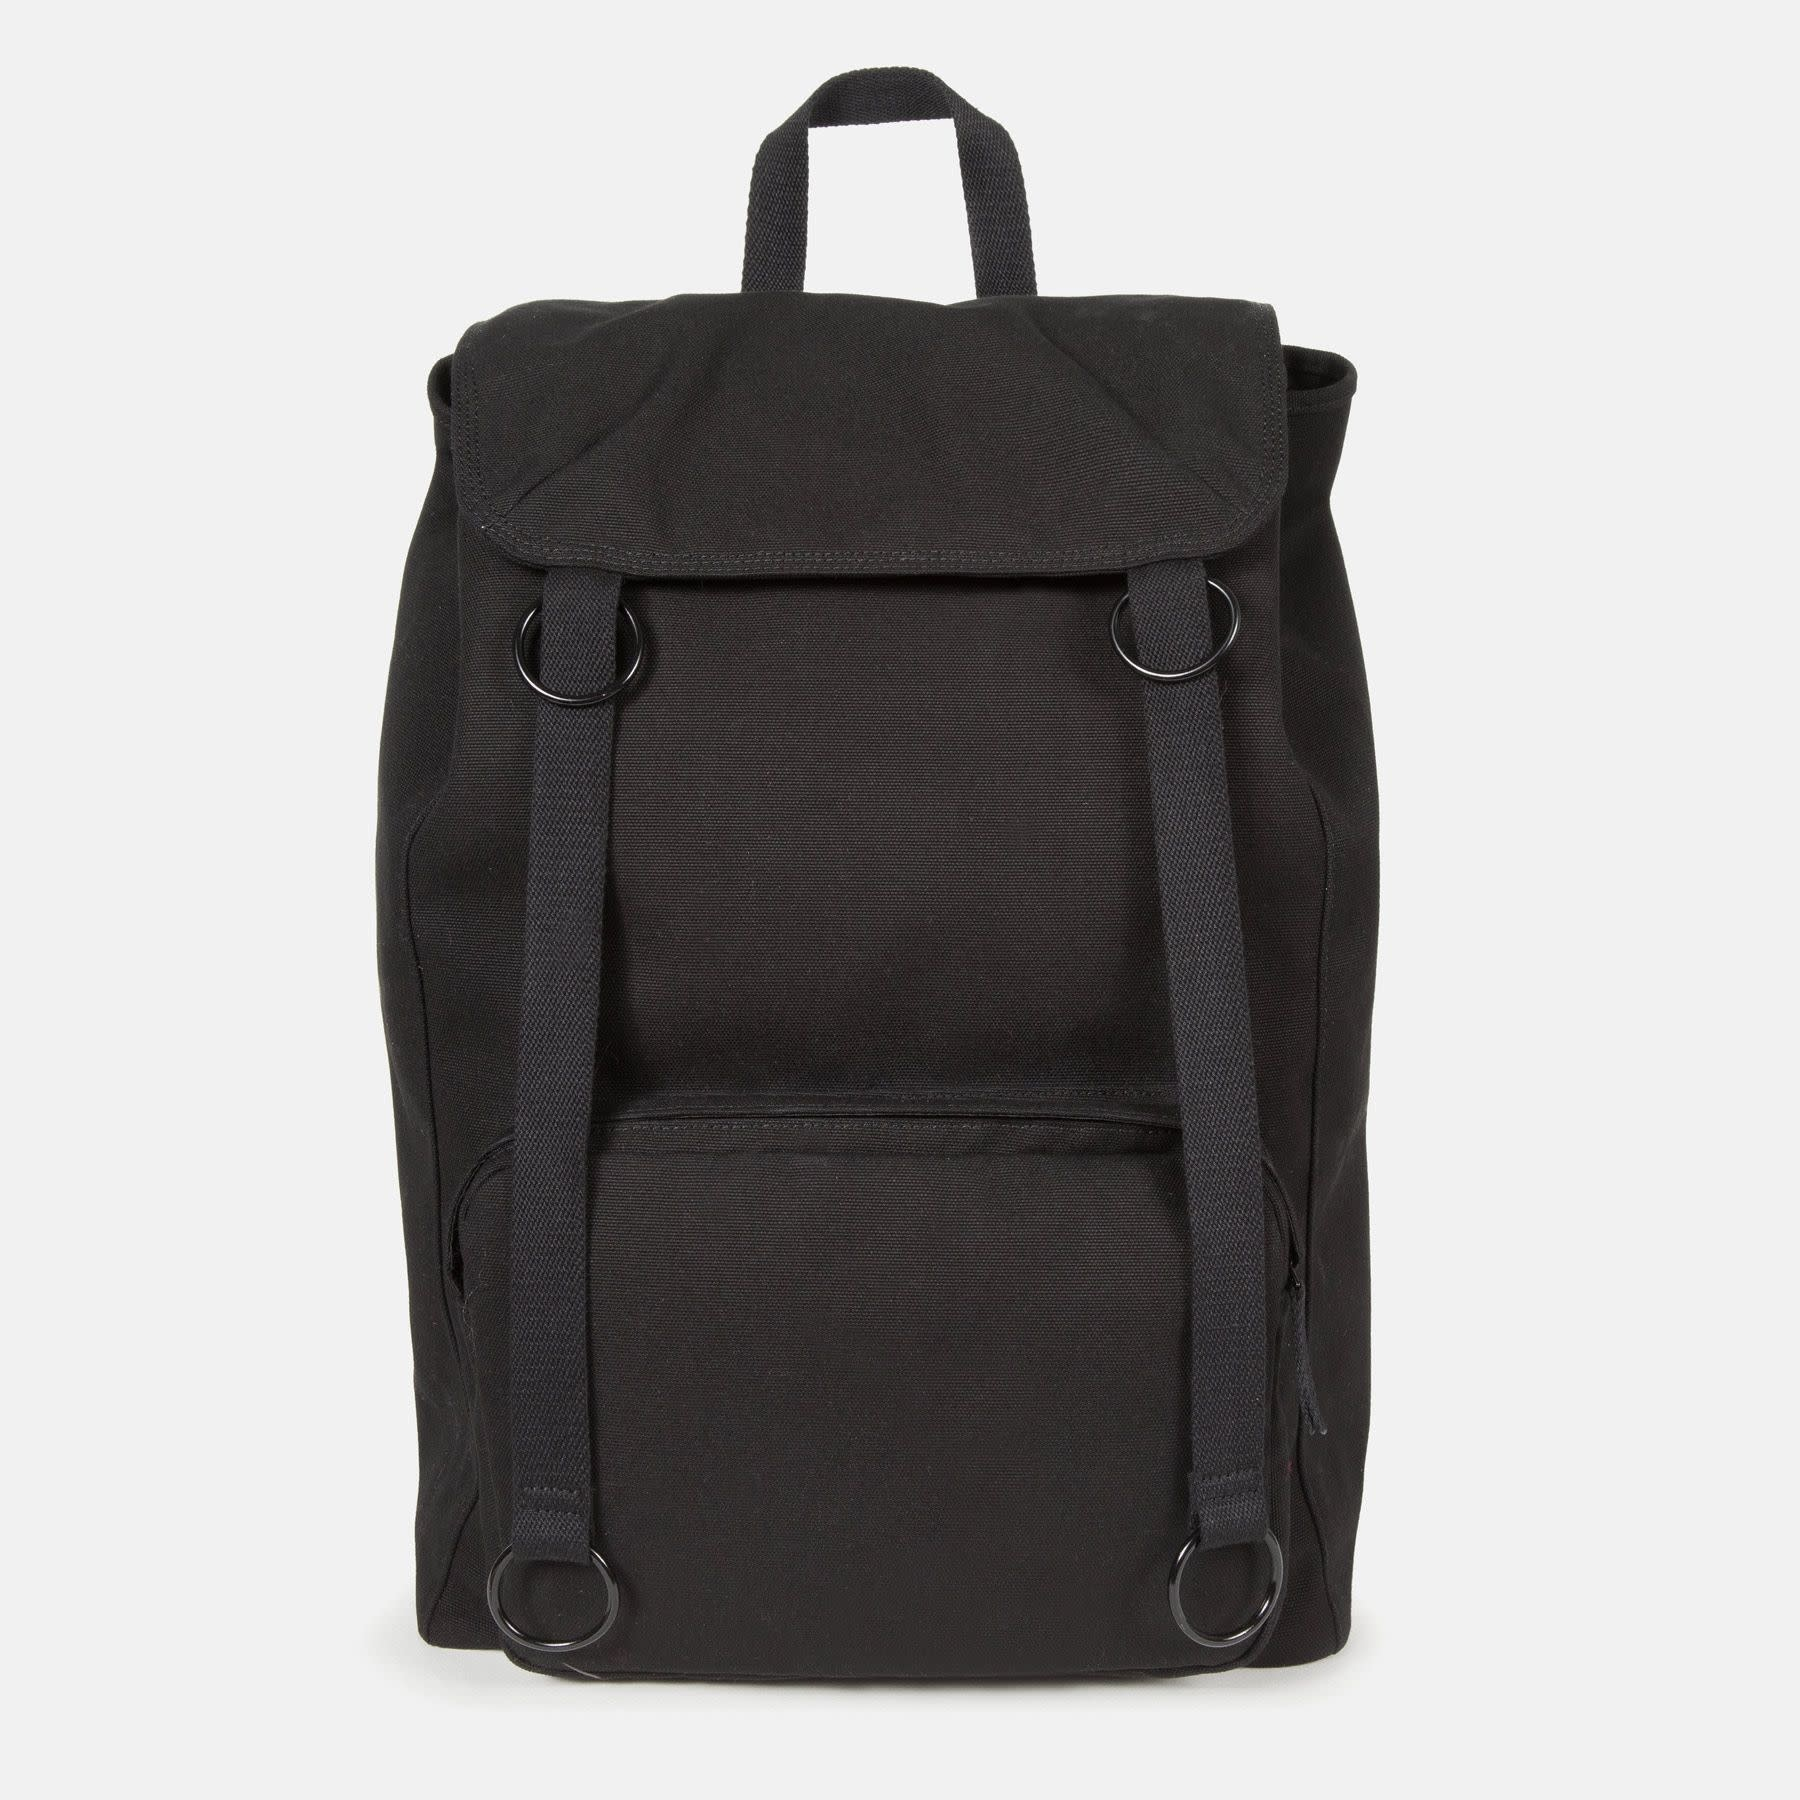 RAF SIMONS Raf Simons X Eastpak Topload Loop Backpack Black